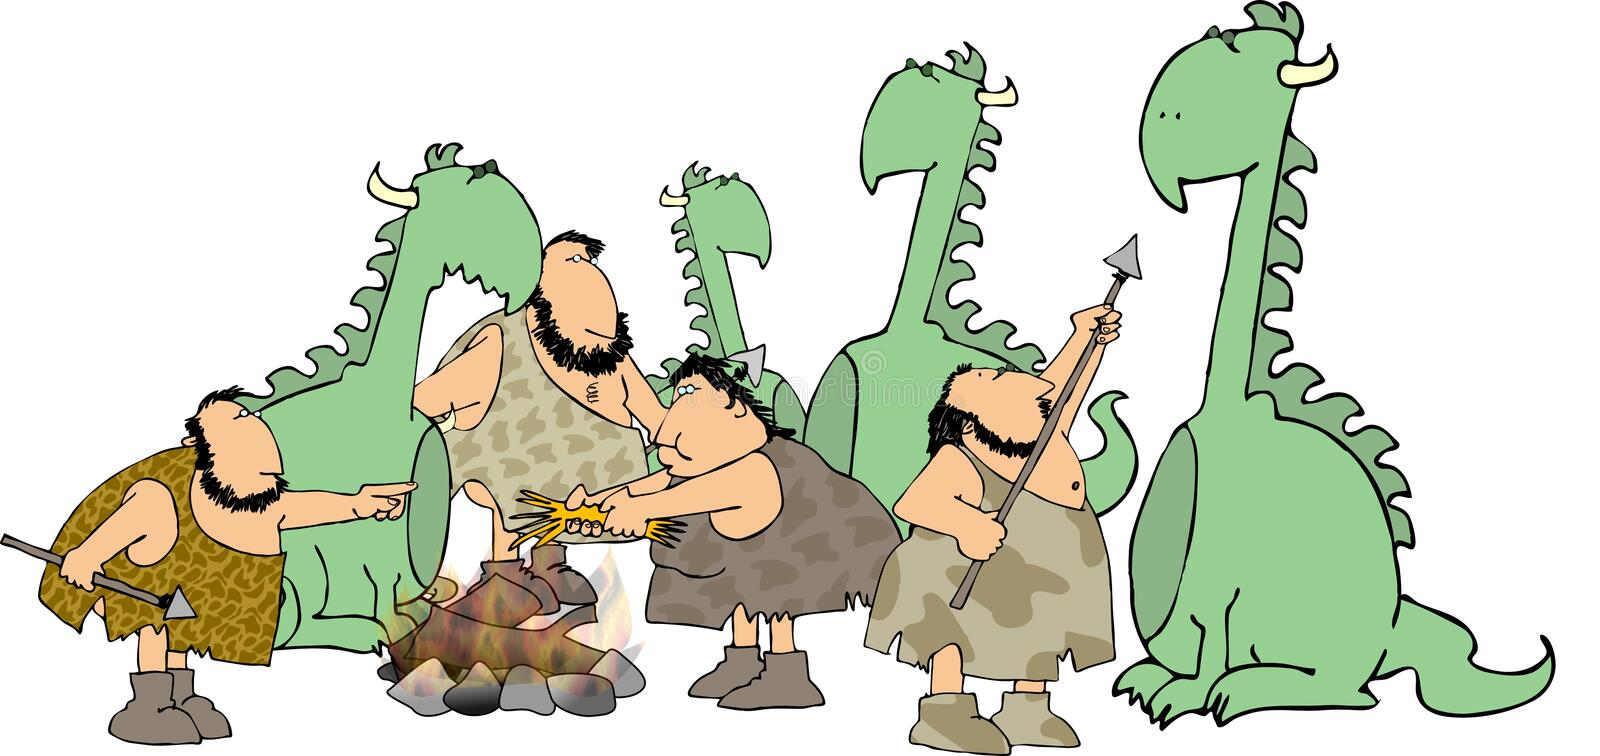 Caveman hunters vector illustration